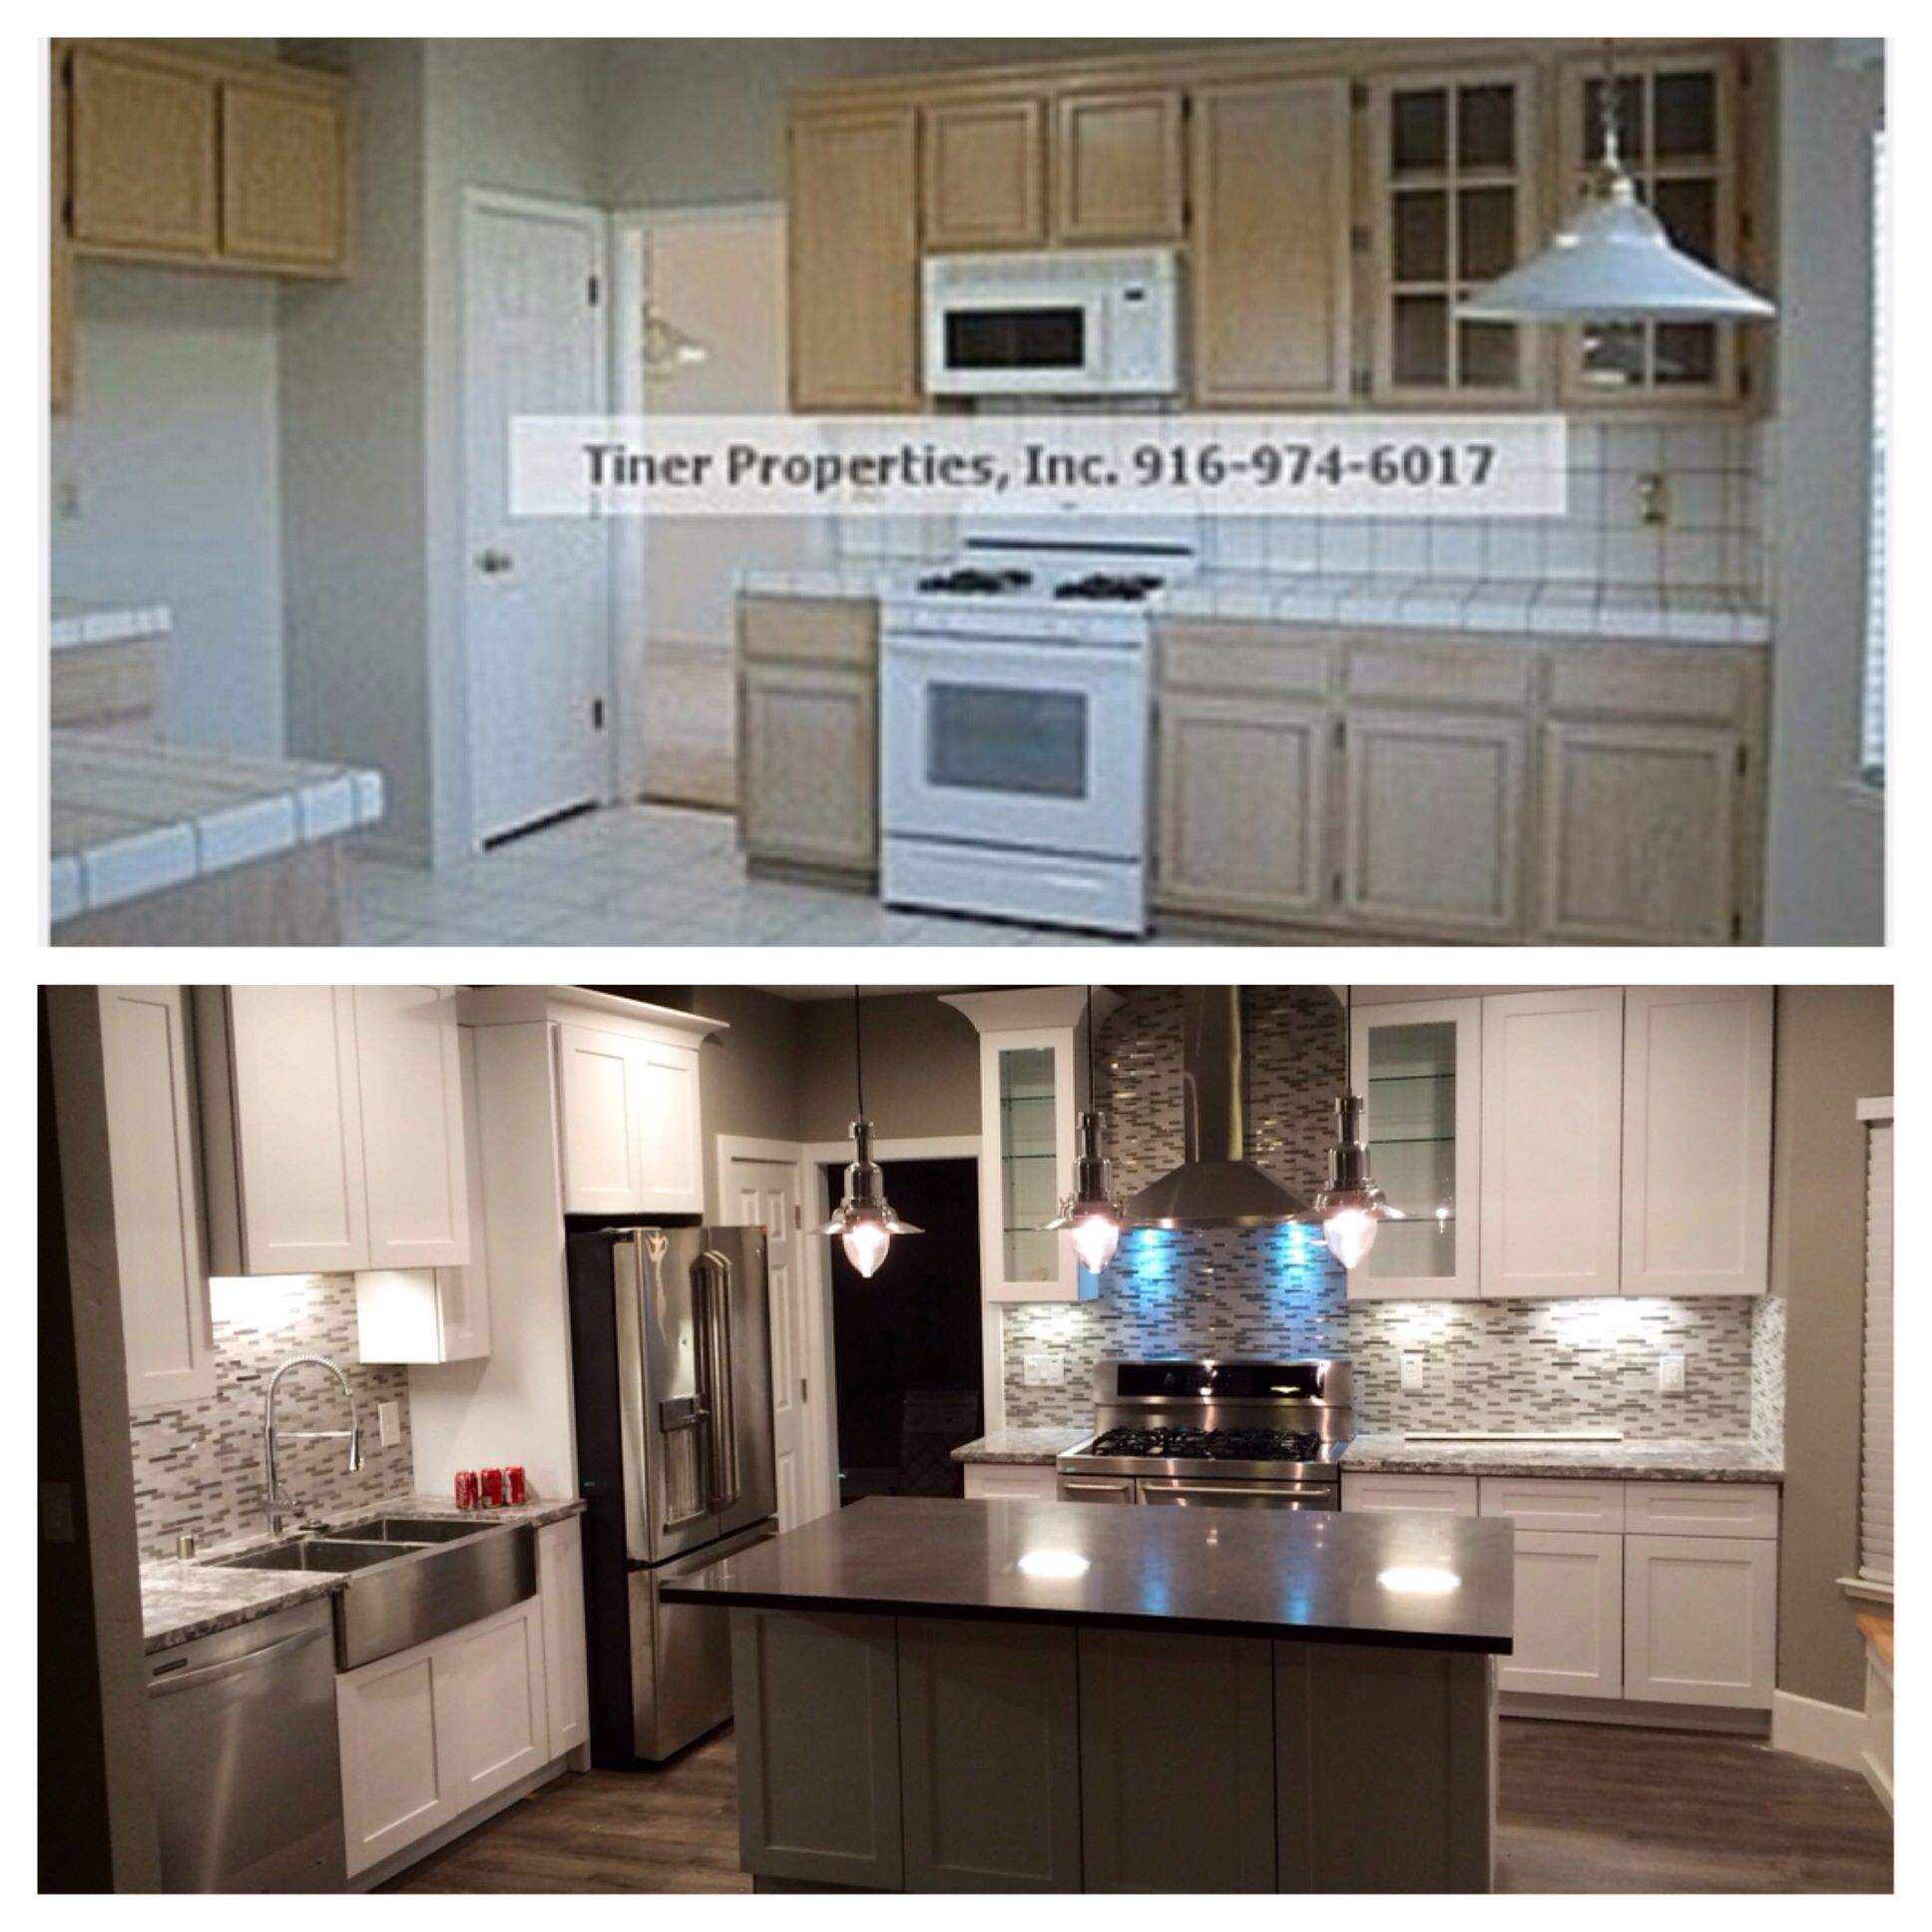 New Kitchen Before And After: Kitchen Reno - Before And After